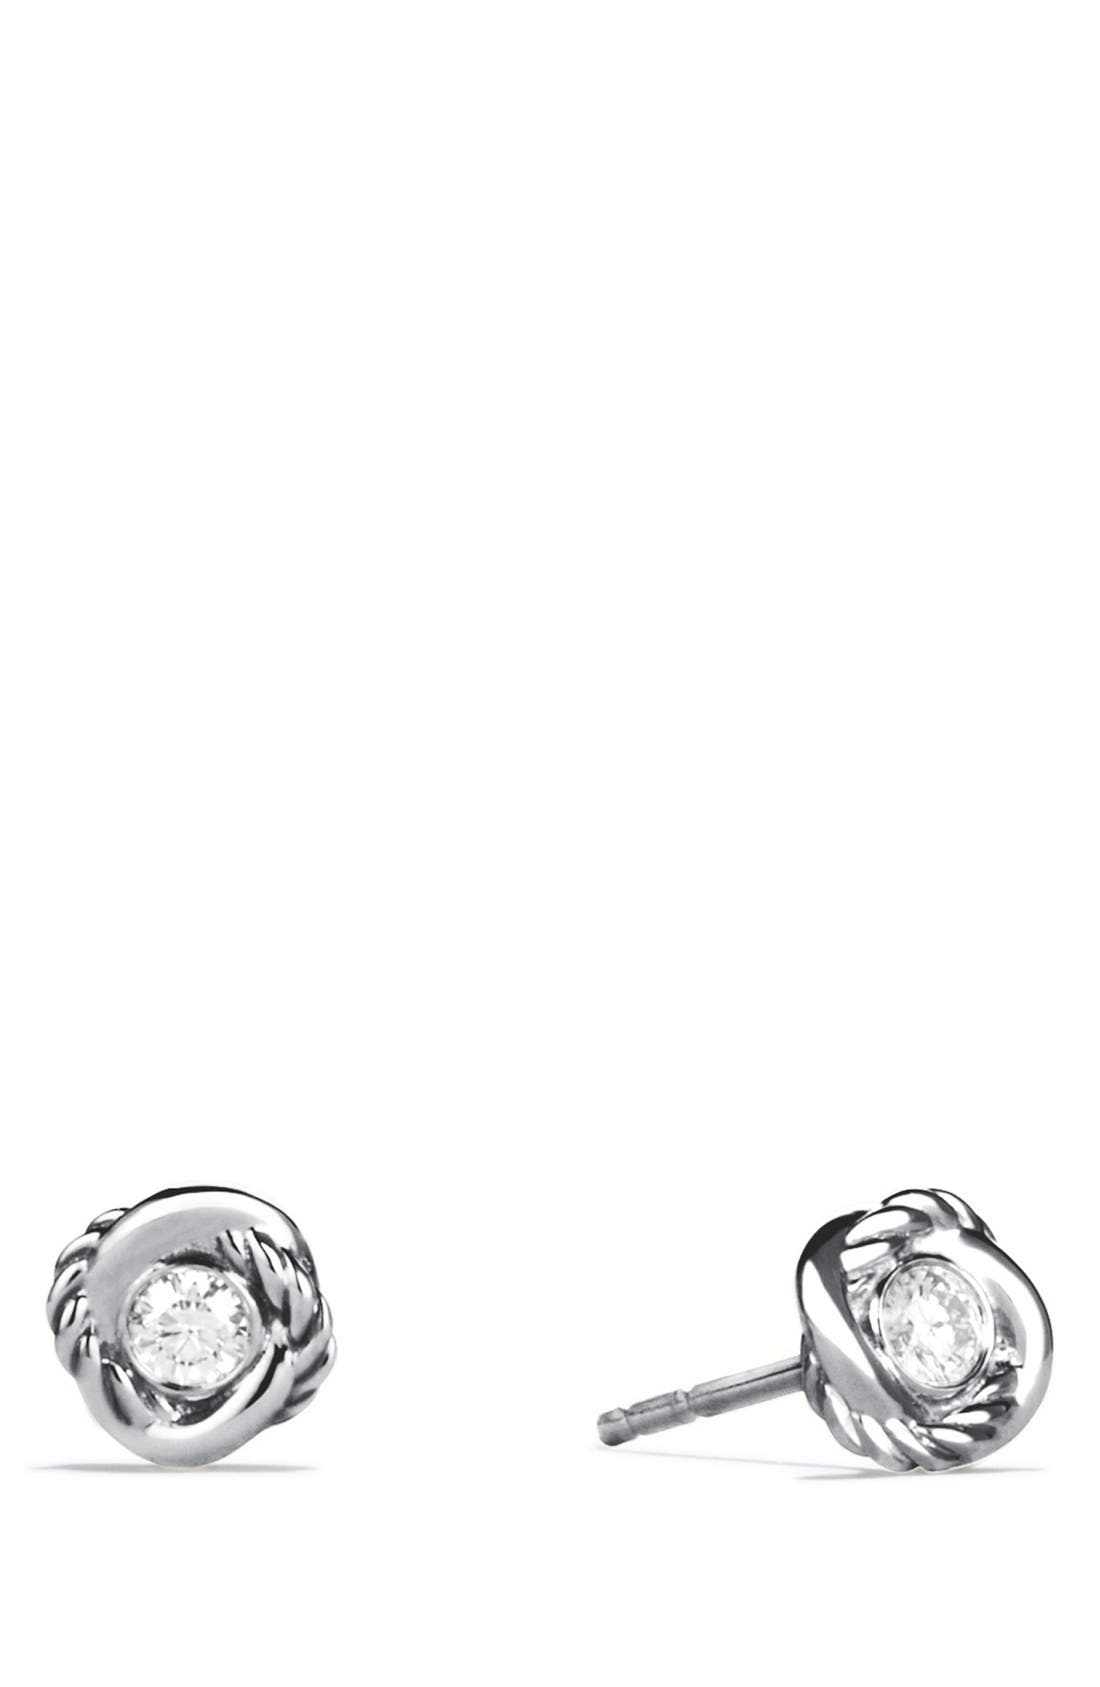 David Yurman 'Infinity' Earrings with Diamonds